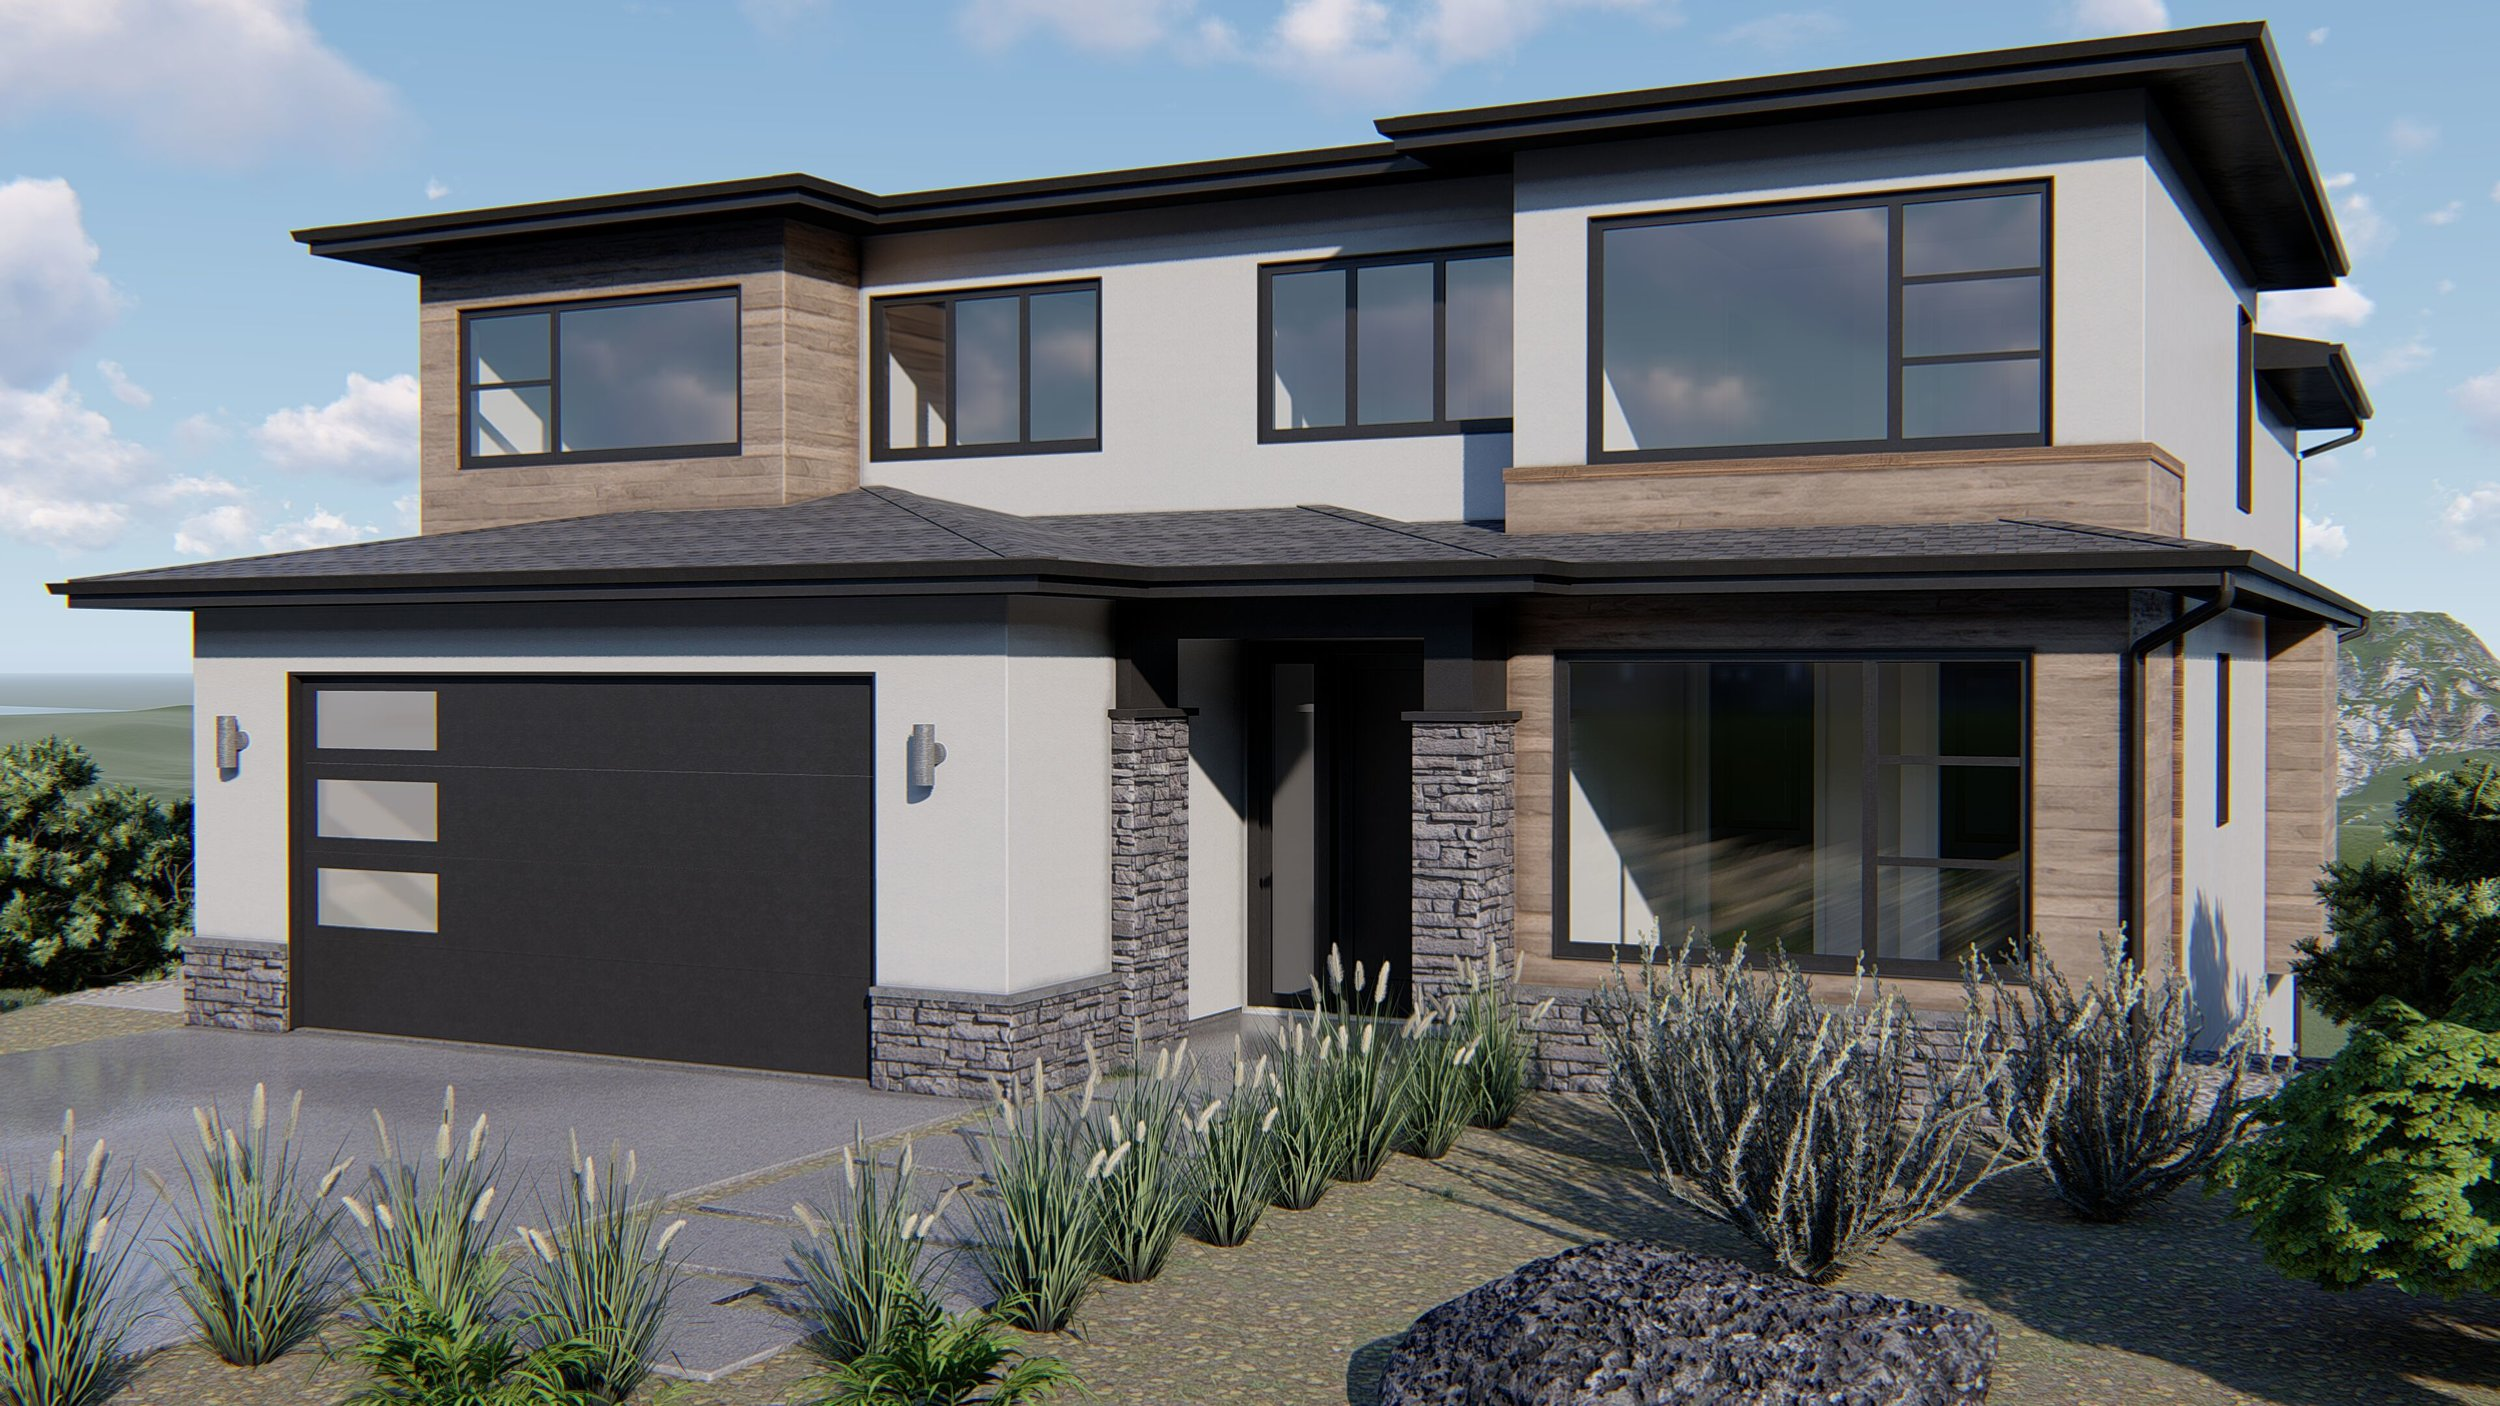 Rendering of a home plan available at University Heights in Kelowna